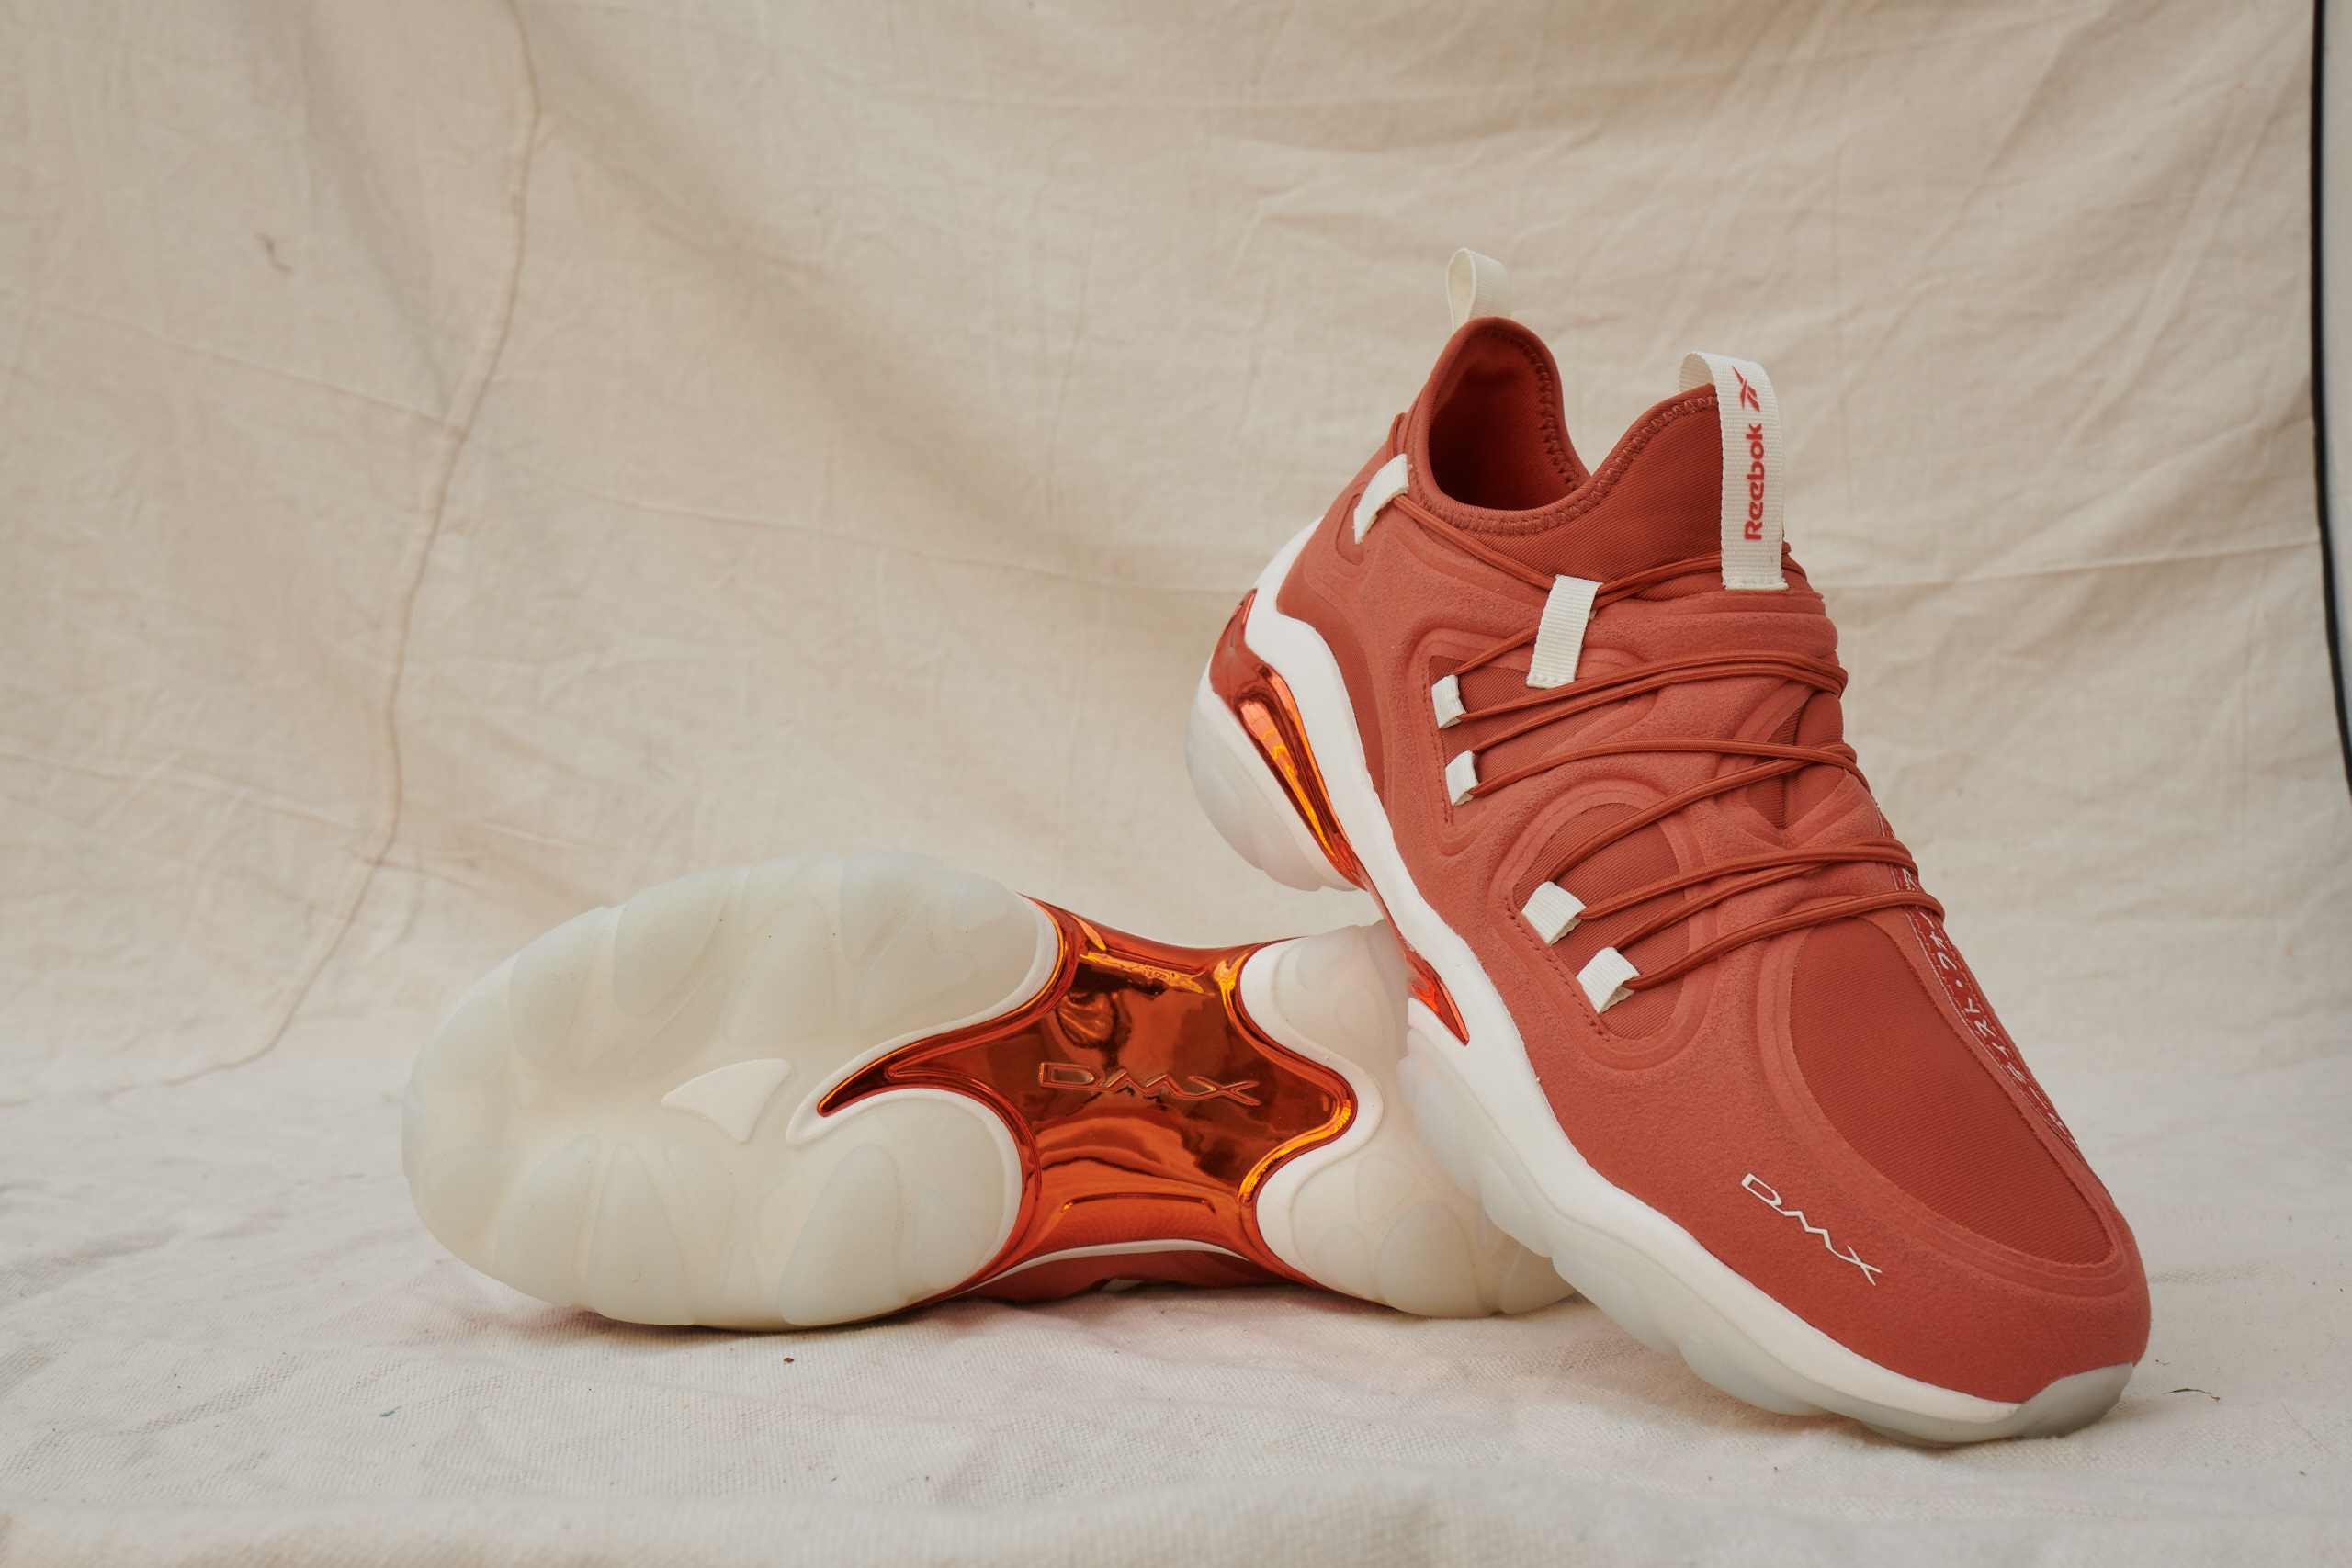 swizz beatz reebok dmx series 2000 mars dust